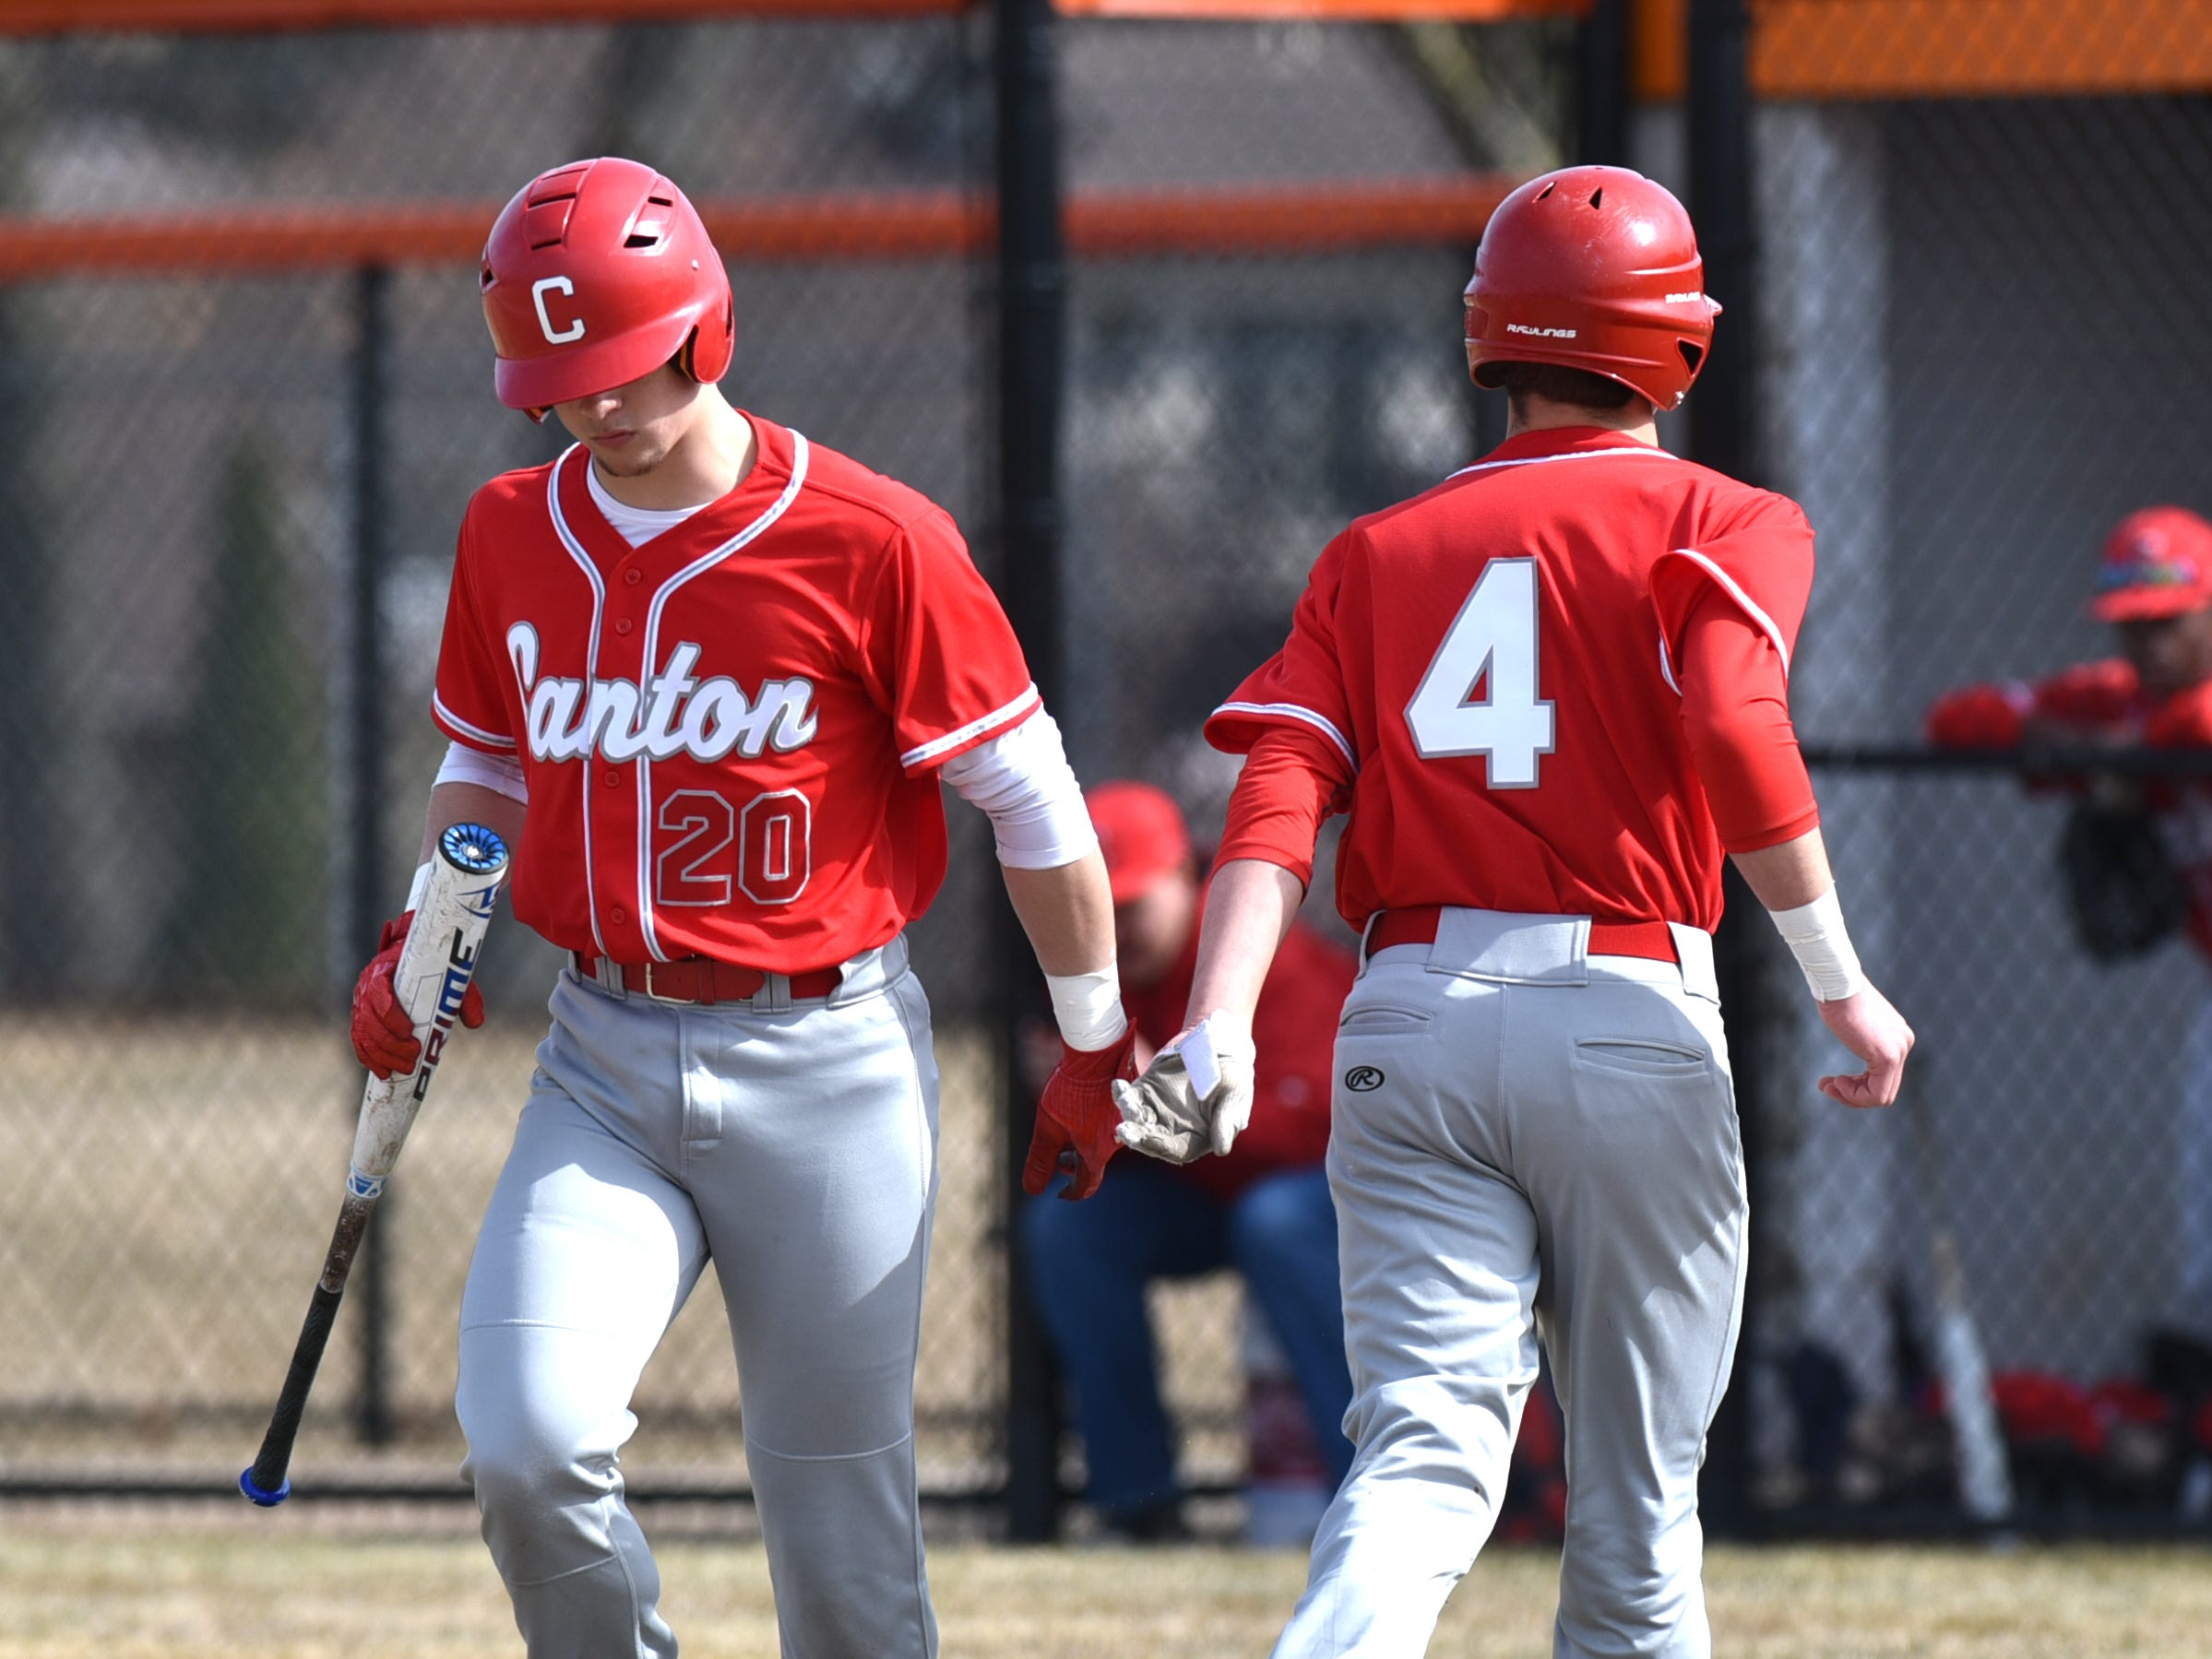 Canton Chief Marco Johnson, left, congratulates Ben Stayziak after he'd brought in a run on a bases loaded walk.